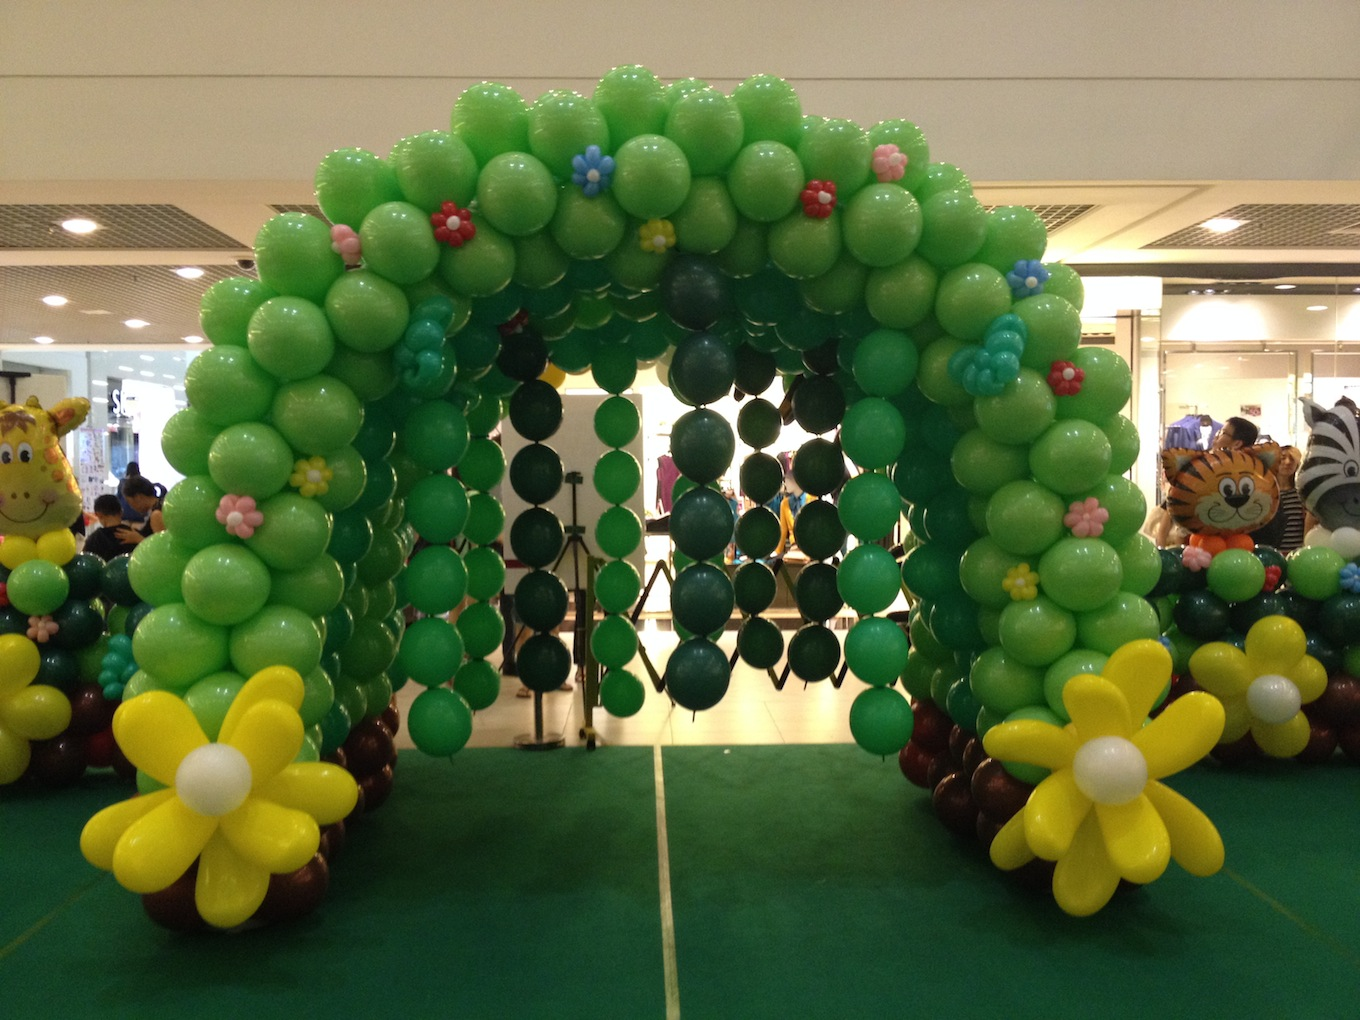 Balloon decoration ideas that balloons for Balloon arch decoration ideas